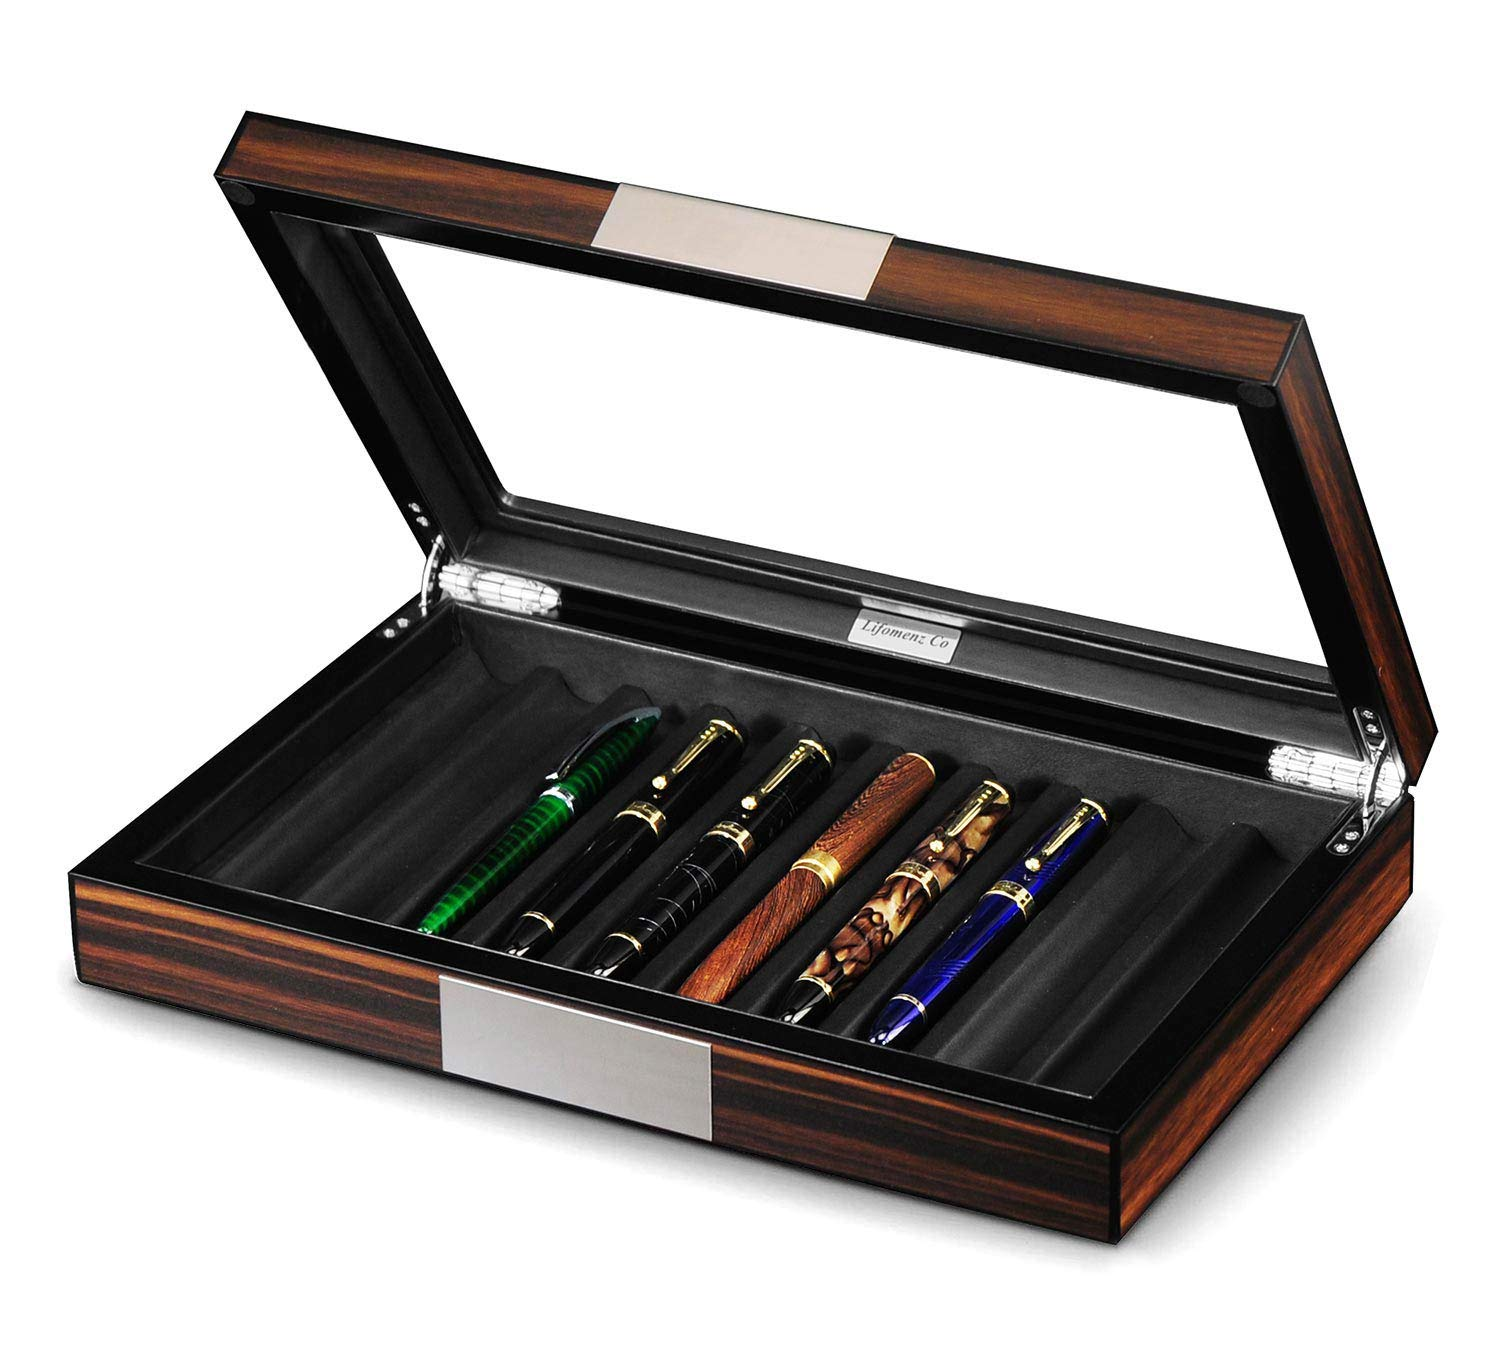 Lifomenz Co Wood Pen Display Box 10 Pen Organizer Box,Glass Pen Display Case Storage Box with Lid,Top Glass Window Pen Collection Display Case by Lifomenz Co